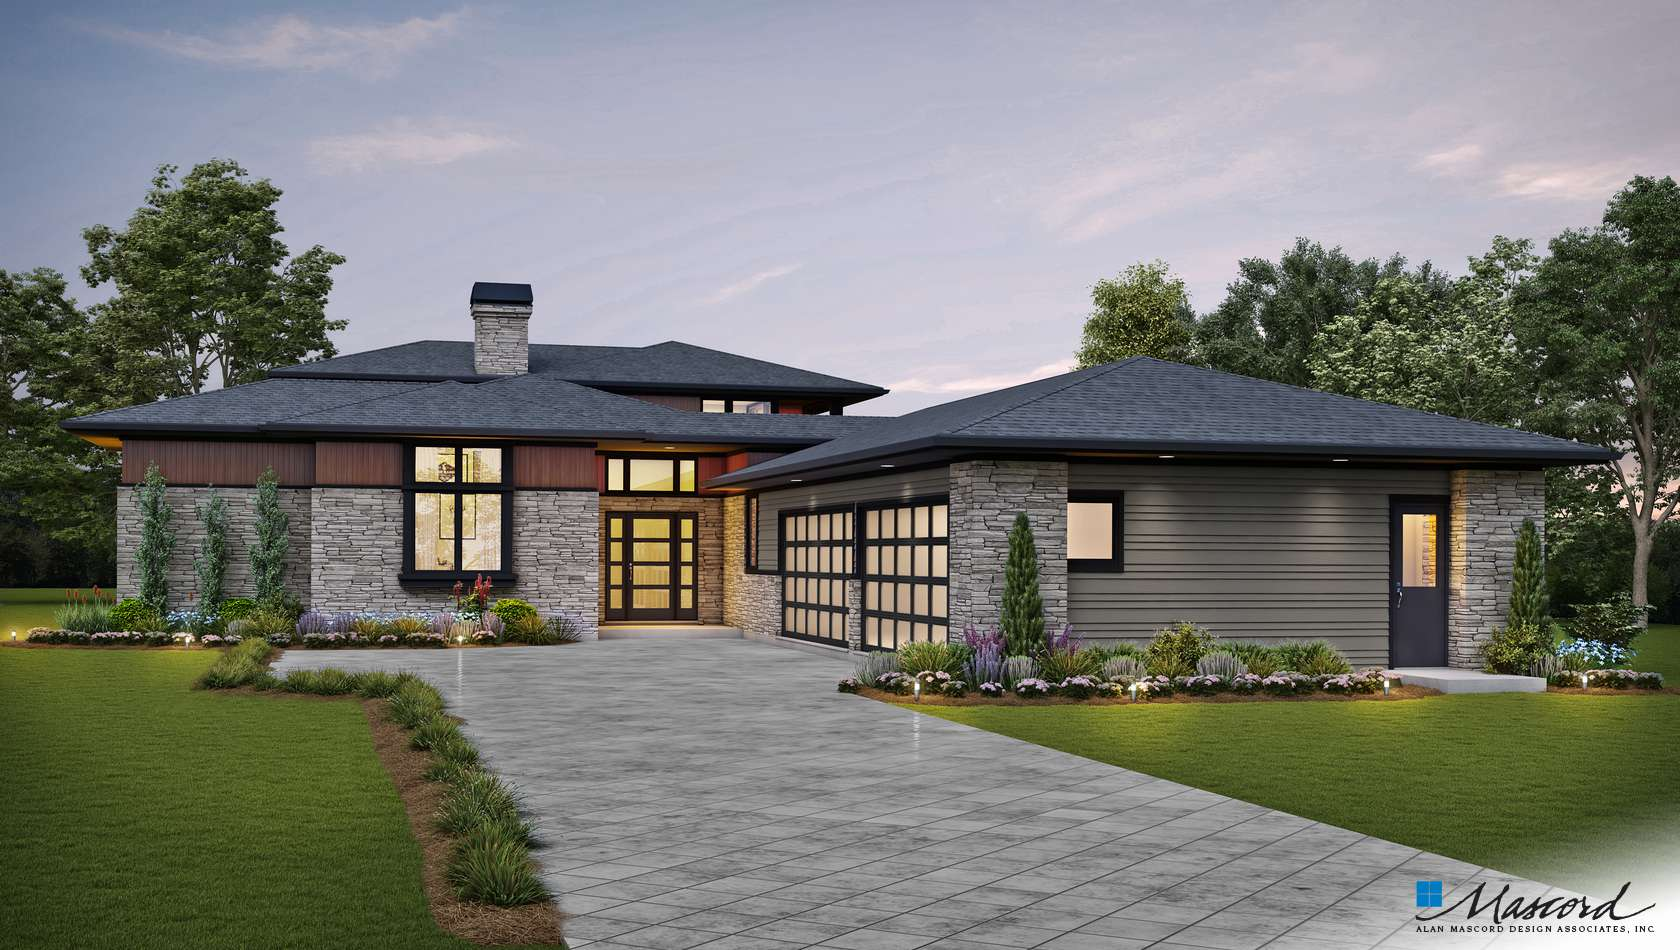 Main image for house plan 23116: The Lucas